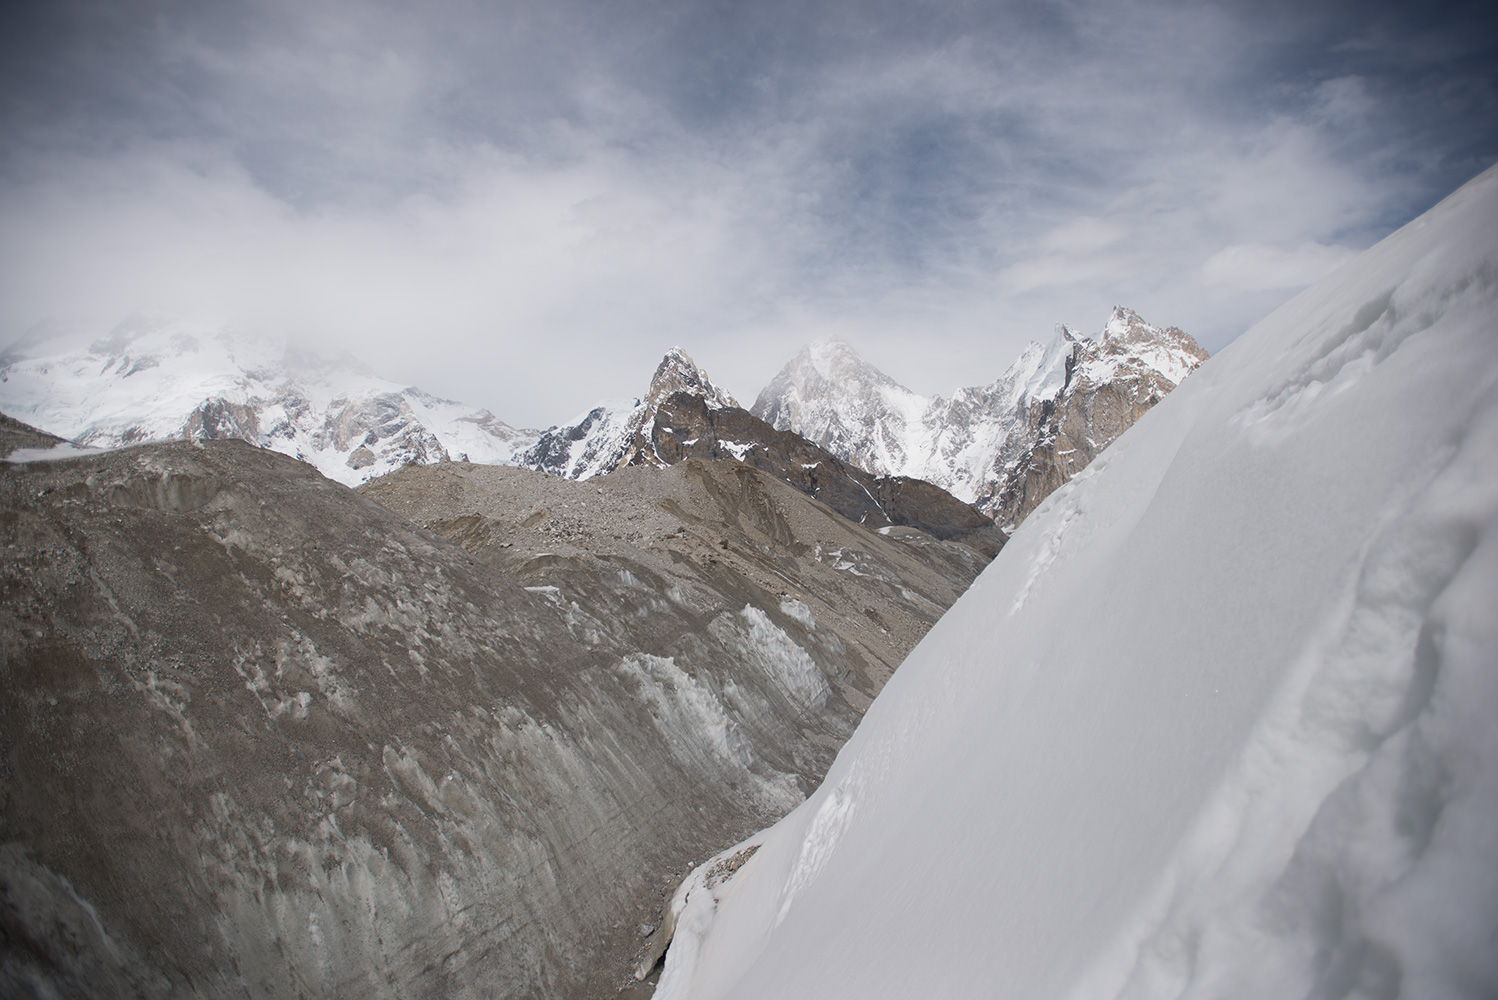 Tricky ground on the approach to Concordia on our return from Broad Peak base camp. Gasherbrum IV above.